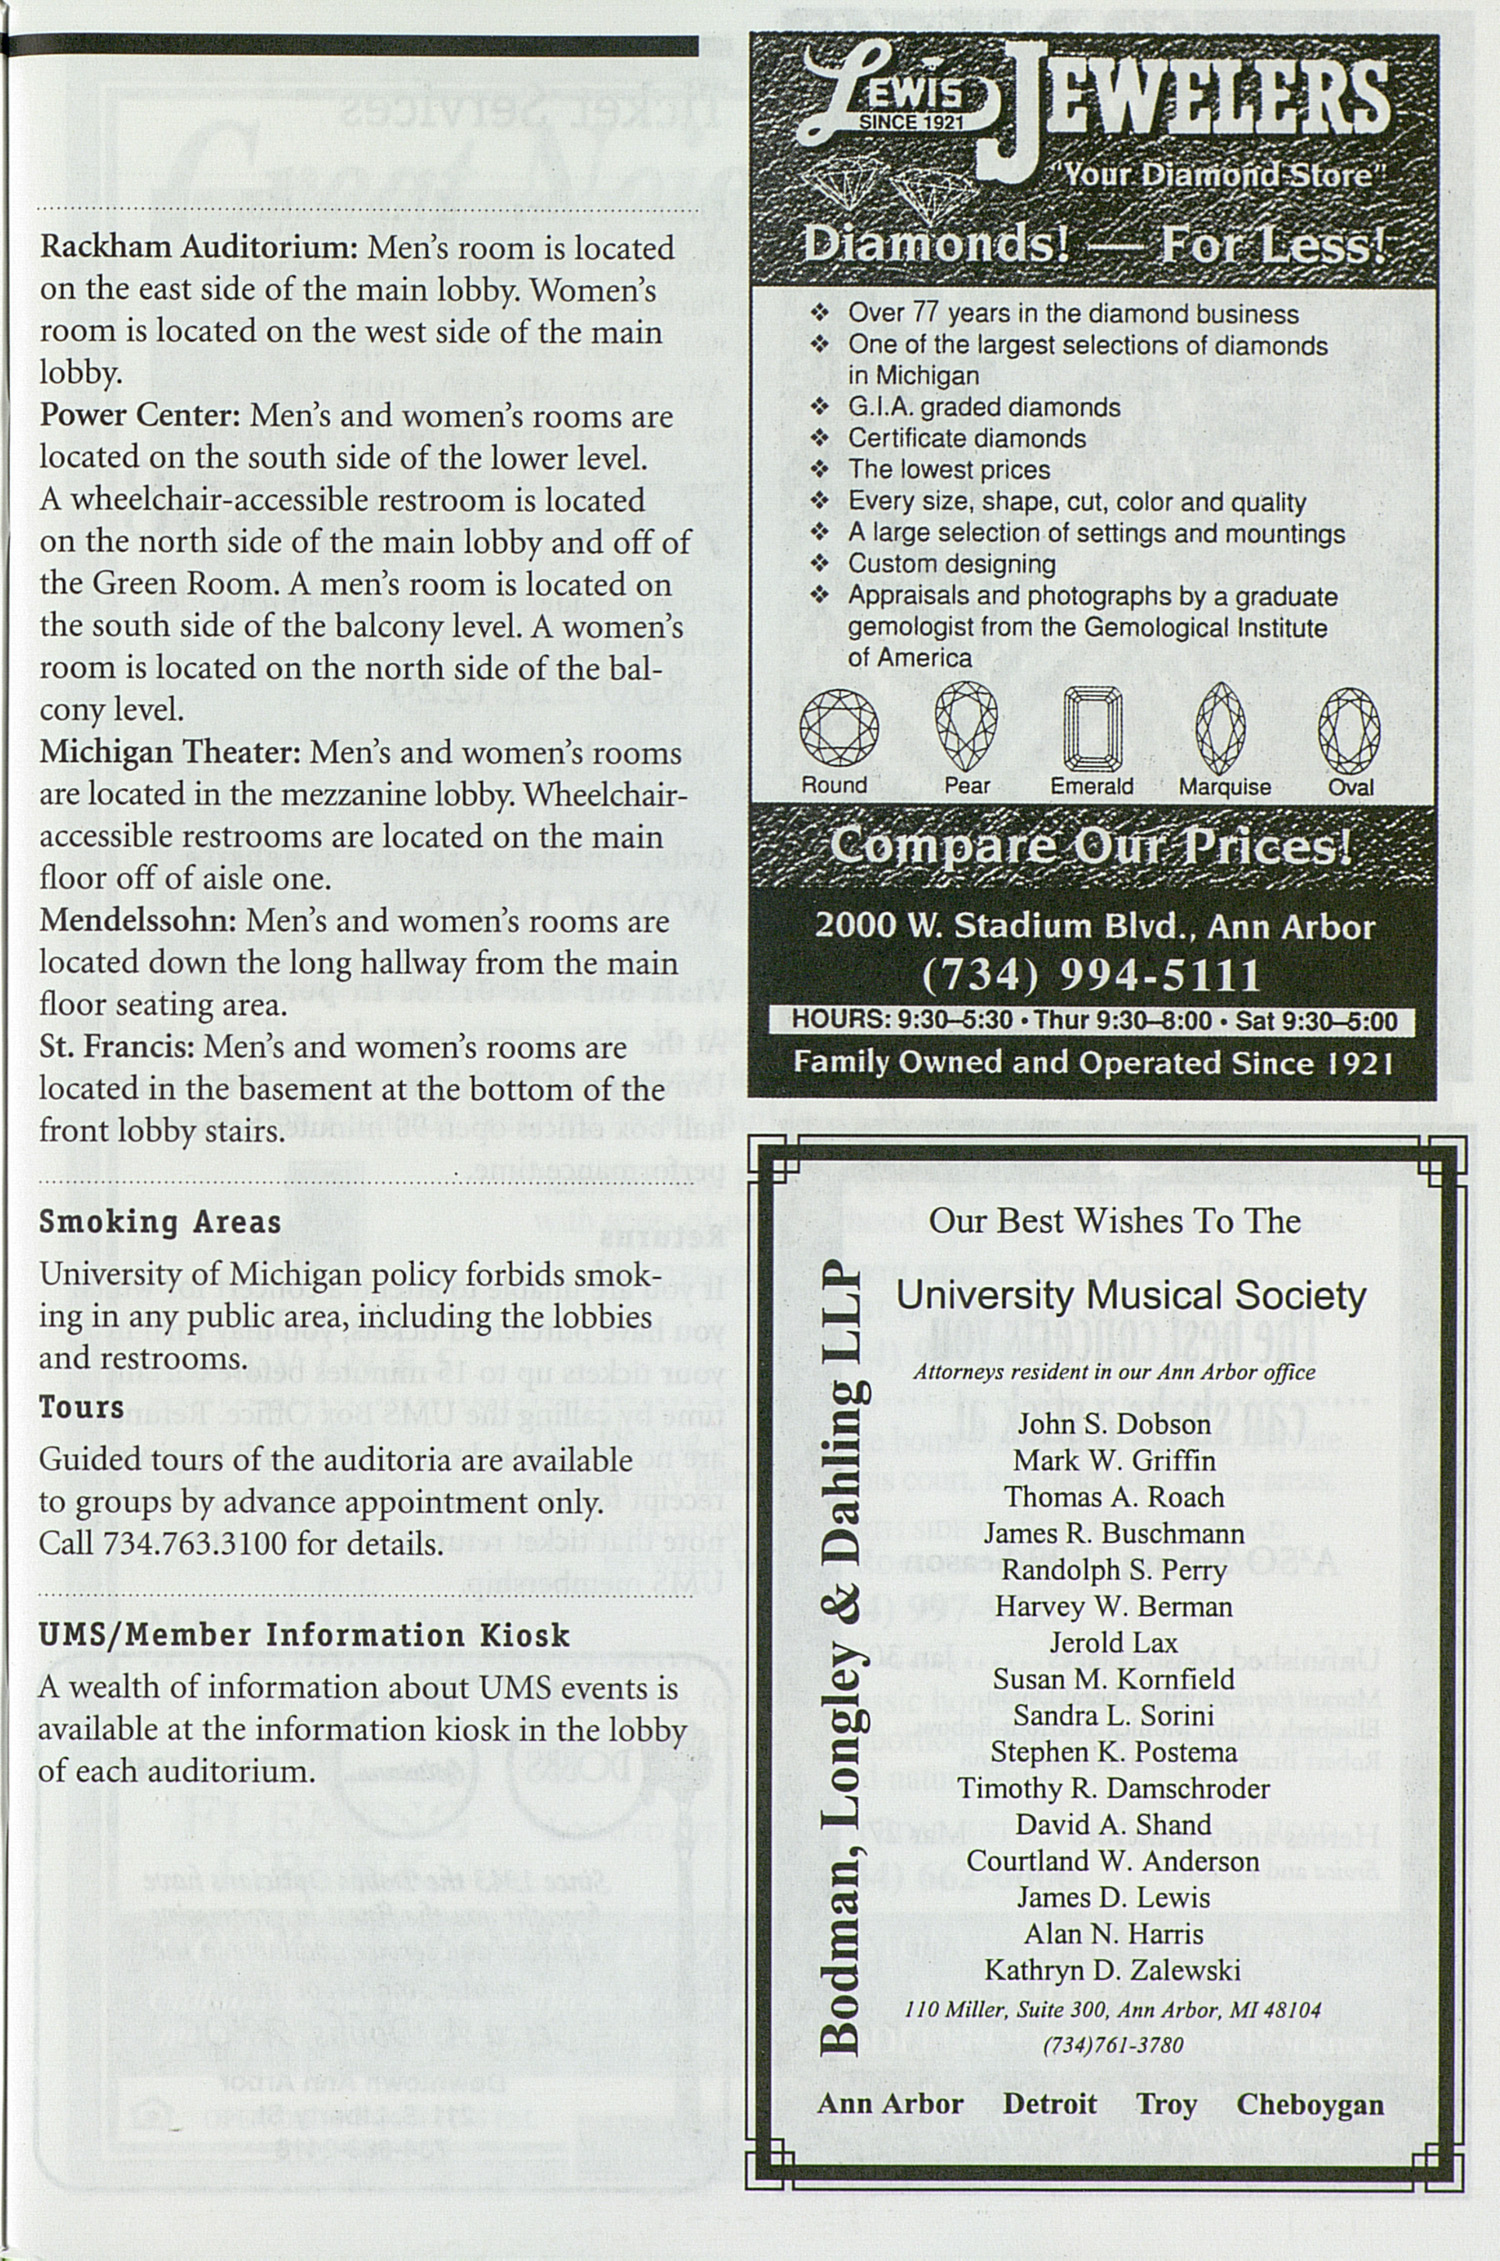 UMS Concert Program, Wednesday Mar. 24 To 30: University Musical Society: 1998-1999 Winter - Wednesday Mar. 24 To 30 --  image